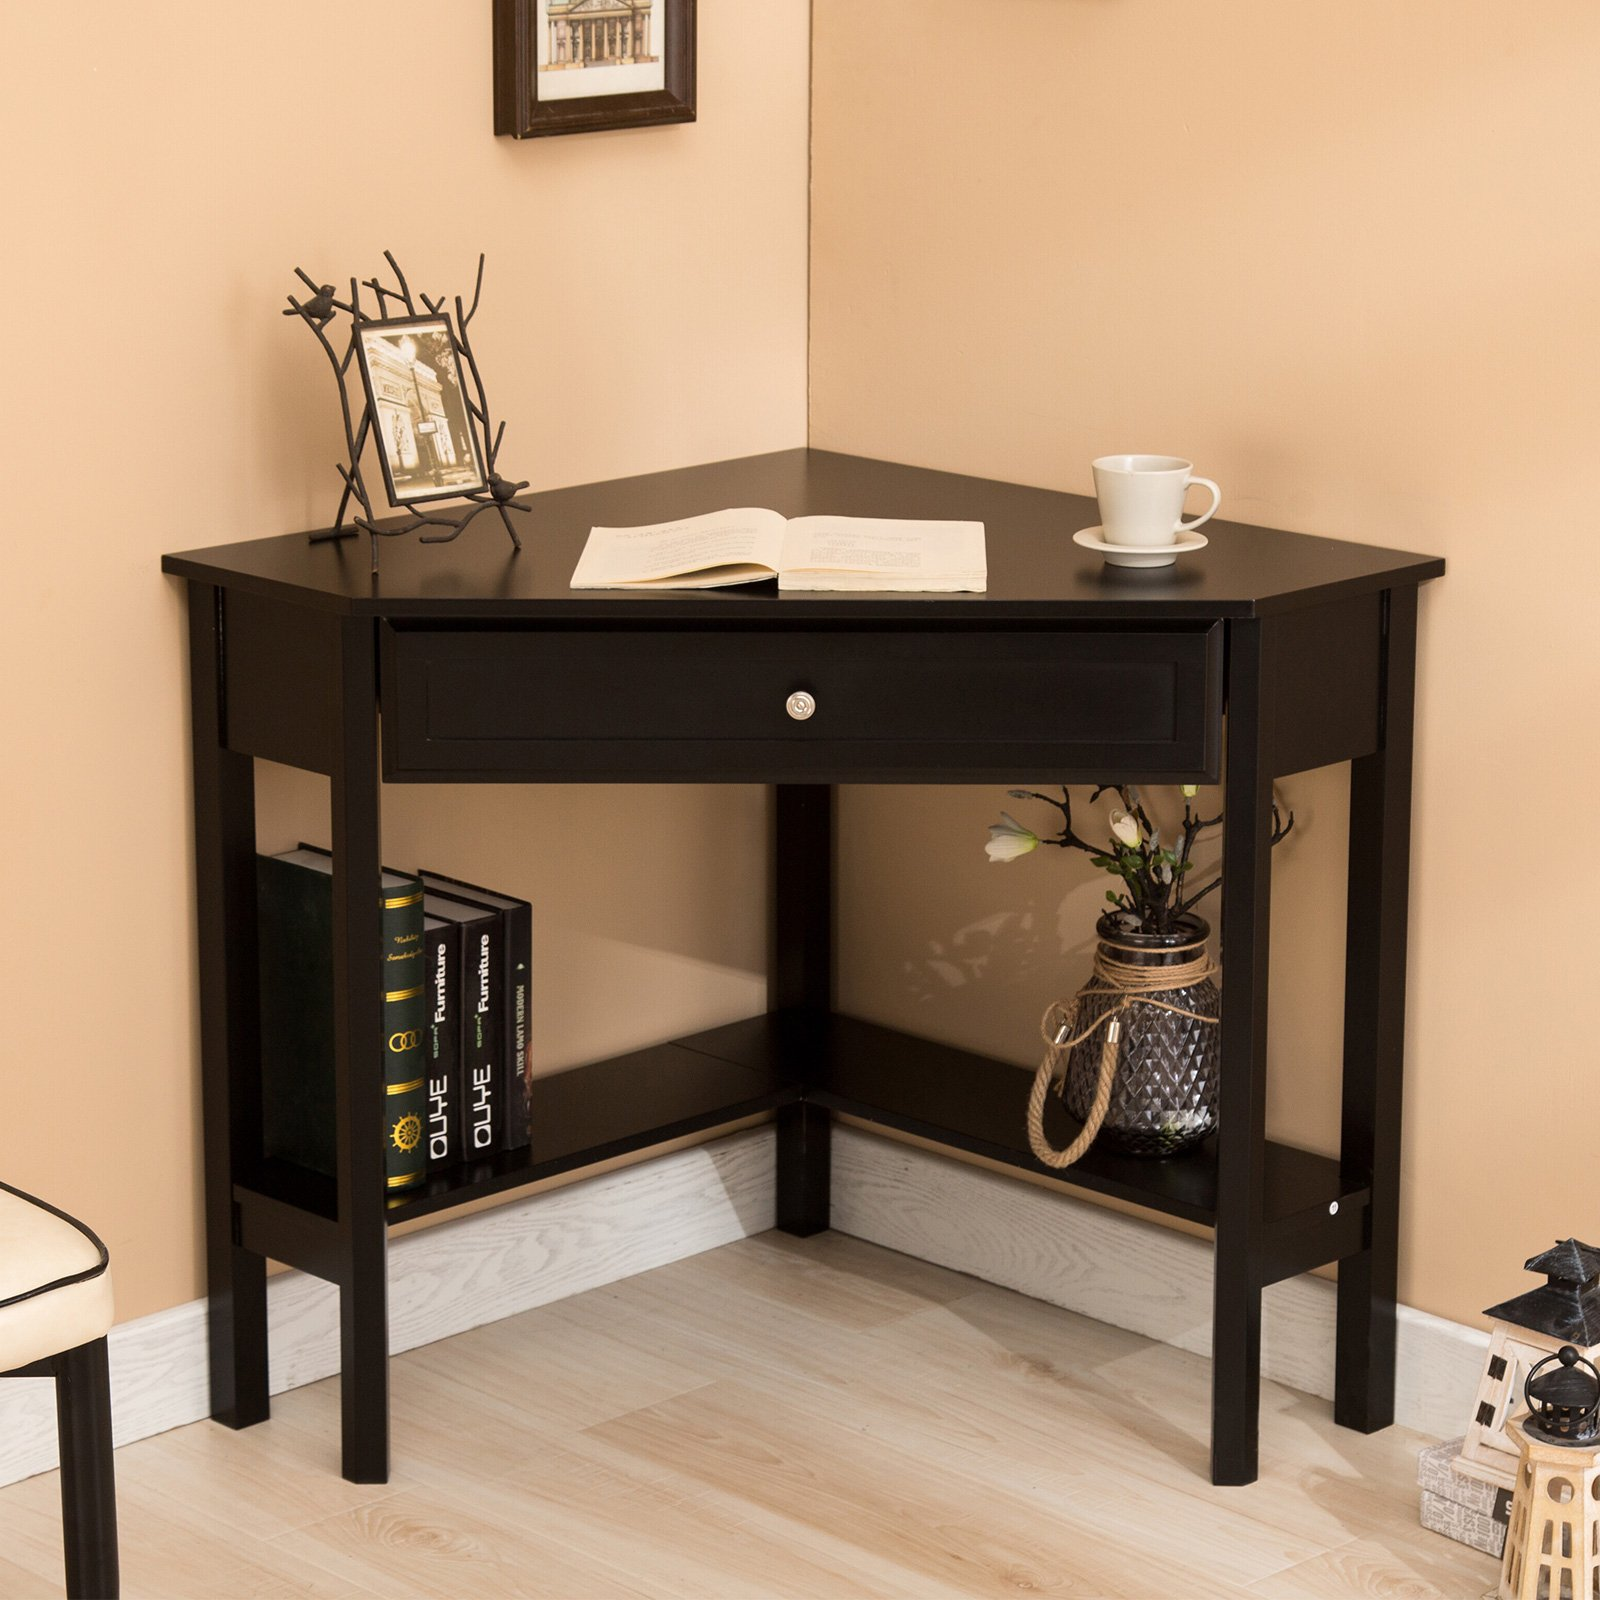 Mecor Corner Desk/Table with One Drawer & One Shelf-Wood Corner Computer Laptop Desk for Writing, Work etc-Home Office Use-Black by Mecor